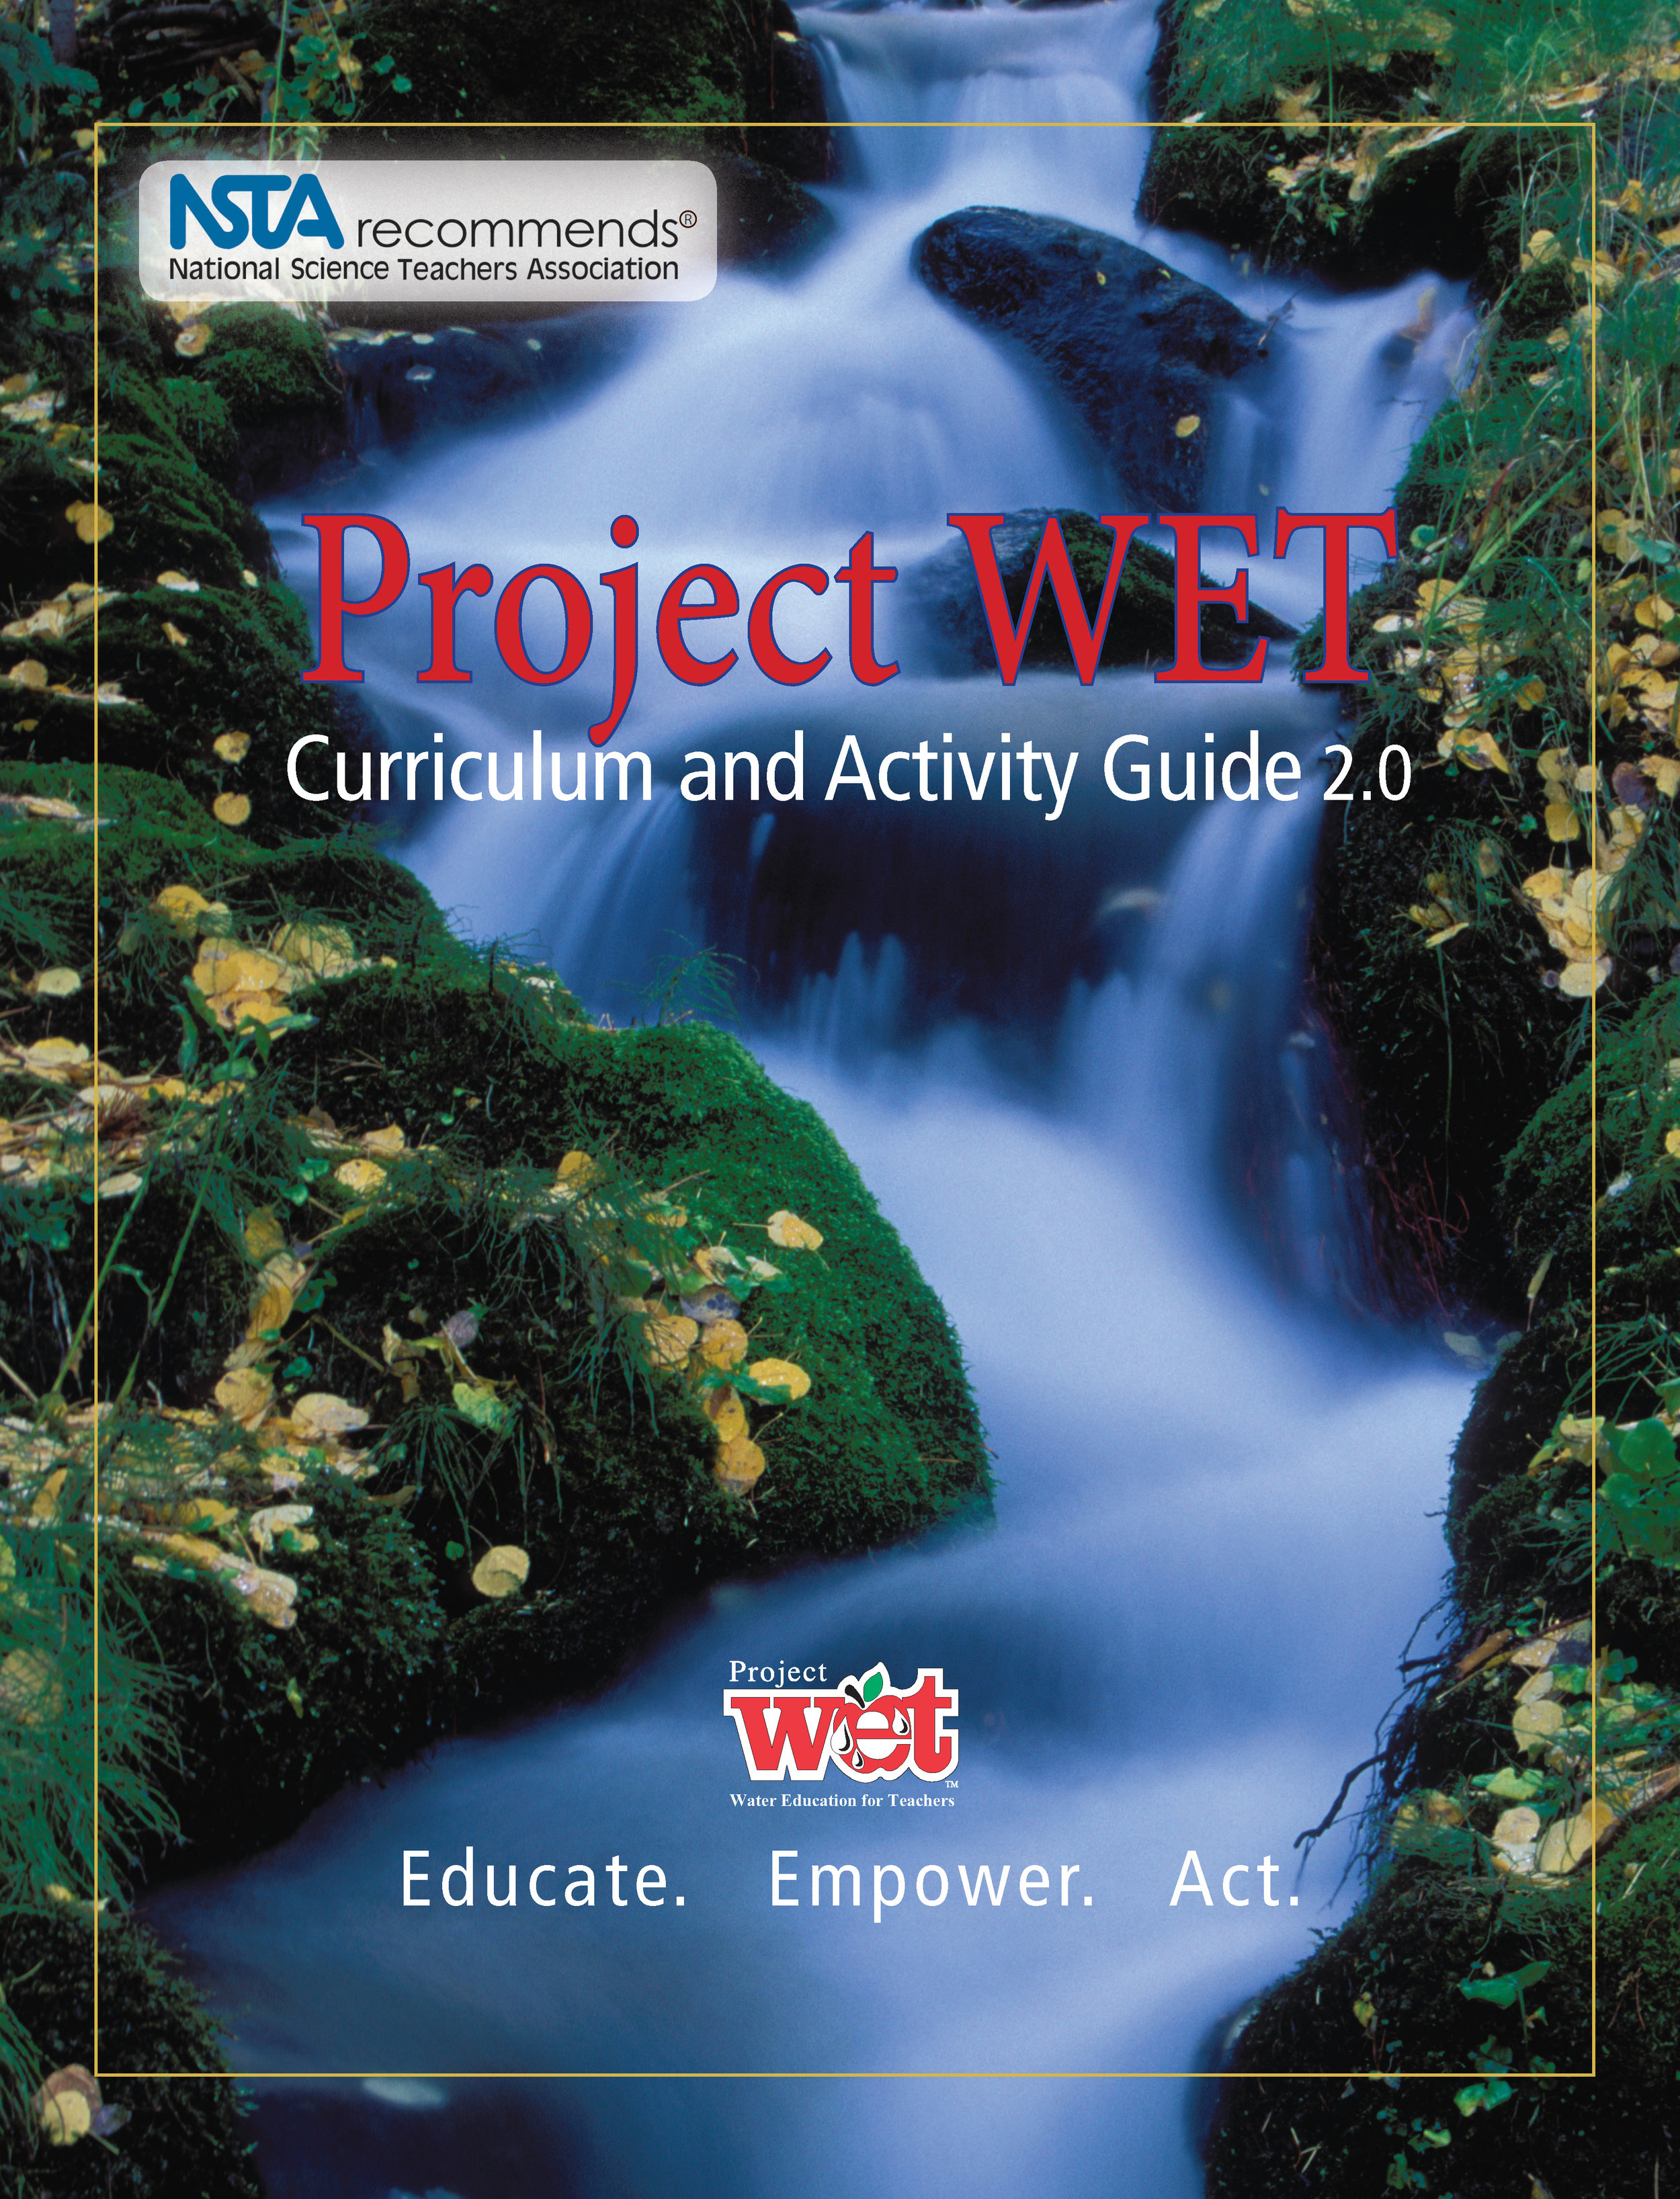 Project WET - Grades K-12The Project WET Foundation offers a multitude of action-education resources that not only educate students about water, but empowers the learner by providing opportunities to develop skills through teamwork, decision making, and problem solving. The activity guide is correlated to K-12 standards, Next Generation Science Standards, Texas Essential Knowledge and Skills, and STEM Education Coalition objectives. A 6 hour CPE investment is required to receive the guide and access to all Project WET resources.Workshops are a comprehensive overview of the Project WET Foundation and hands-on exploration of the Guide 2.0. Attendees will receive full access to all resources and learn ways to implement the cross-curricular activities in their classrooms. Please contact Stephanie Keith for more details!www.projectwet.org*Educators will receive TEA recognized CPE credit for the total 6 hours.